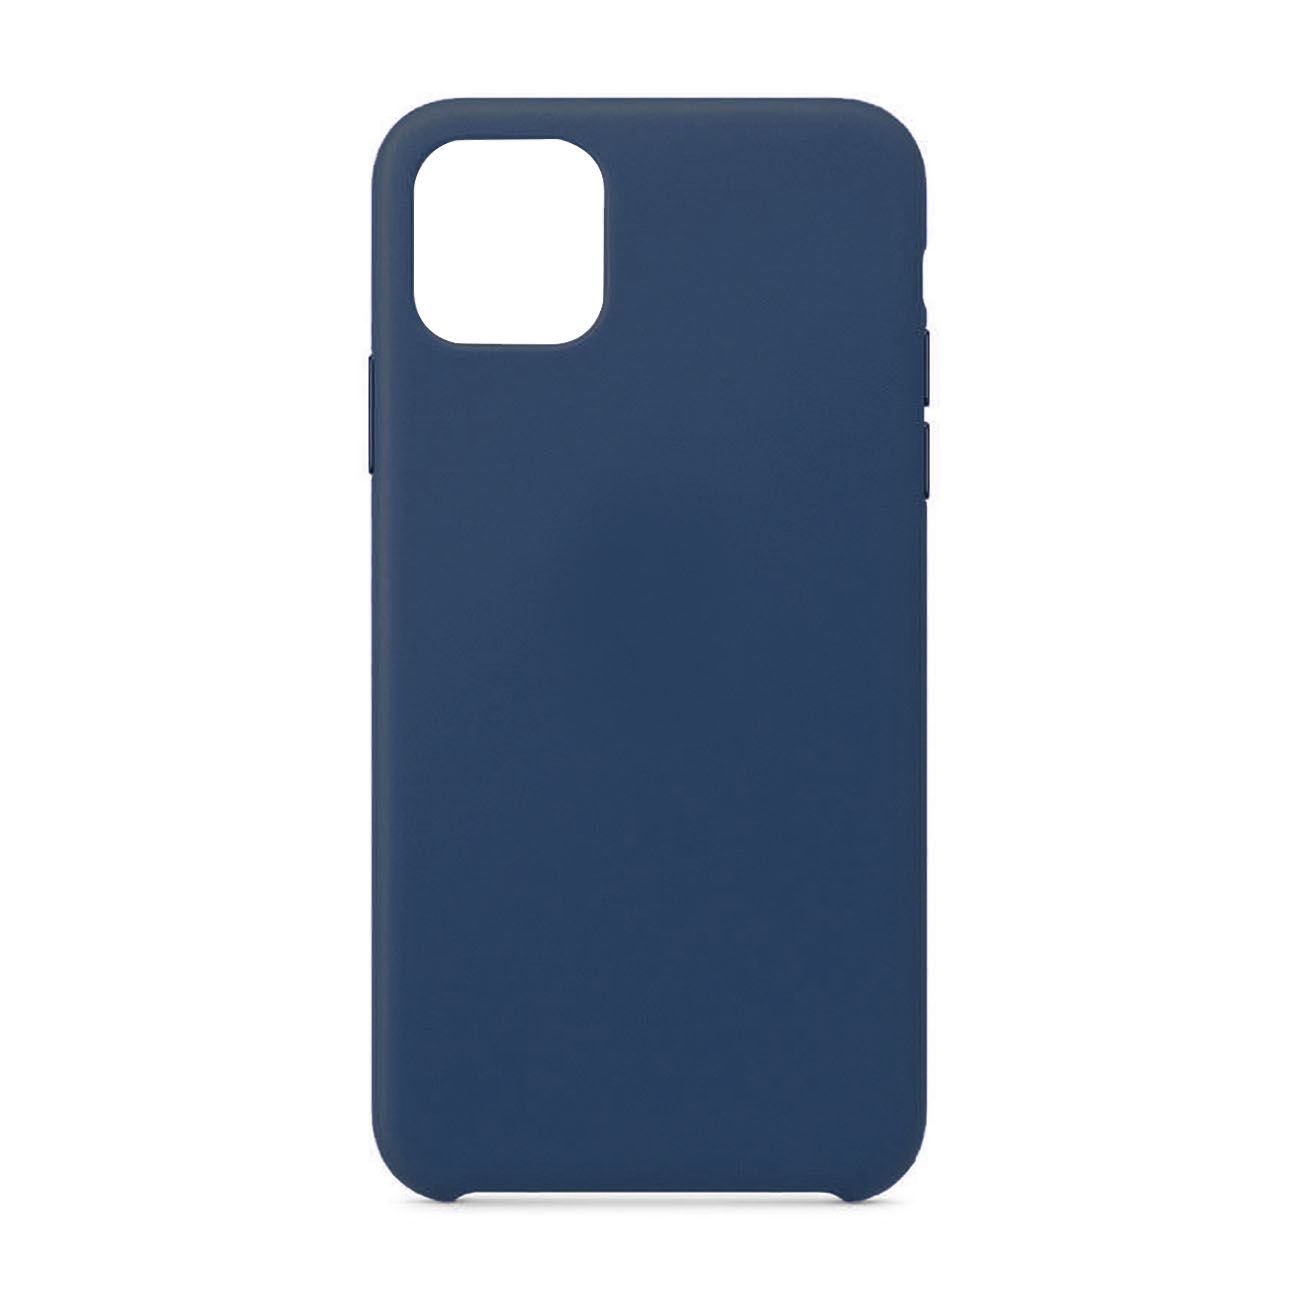 Apple iPhone 11 Pro Gummy Cases In Navy